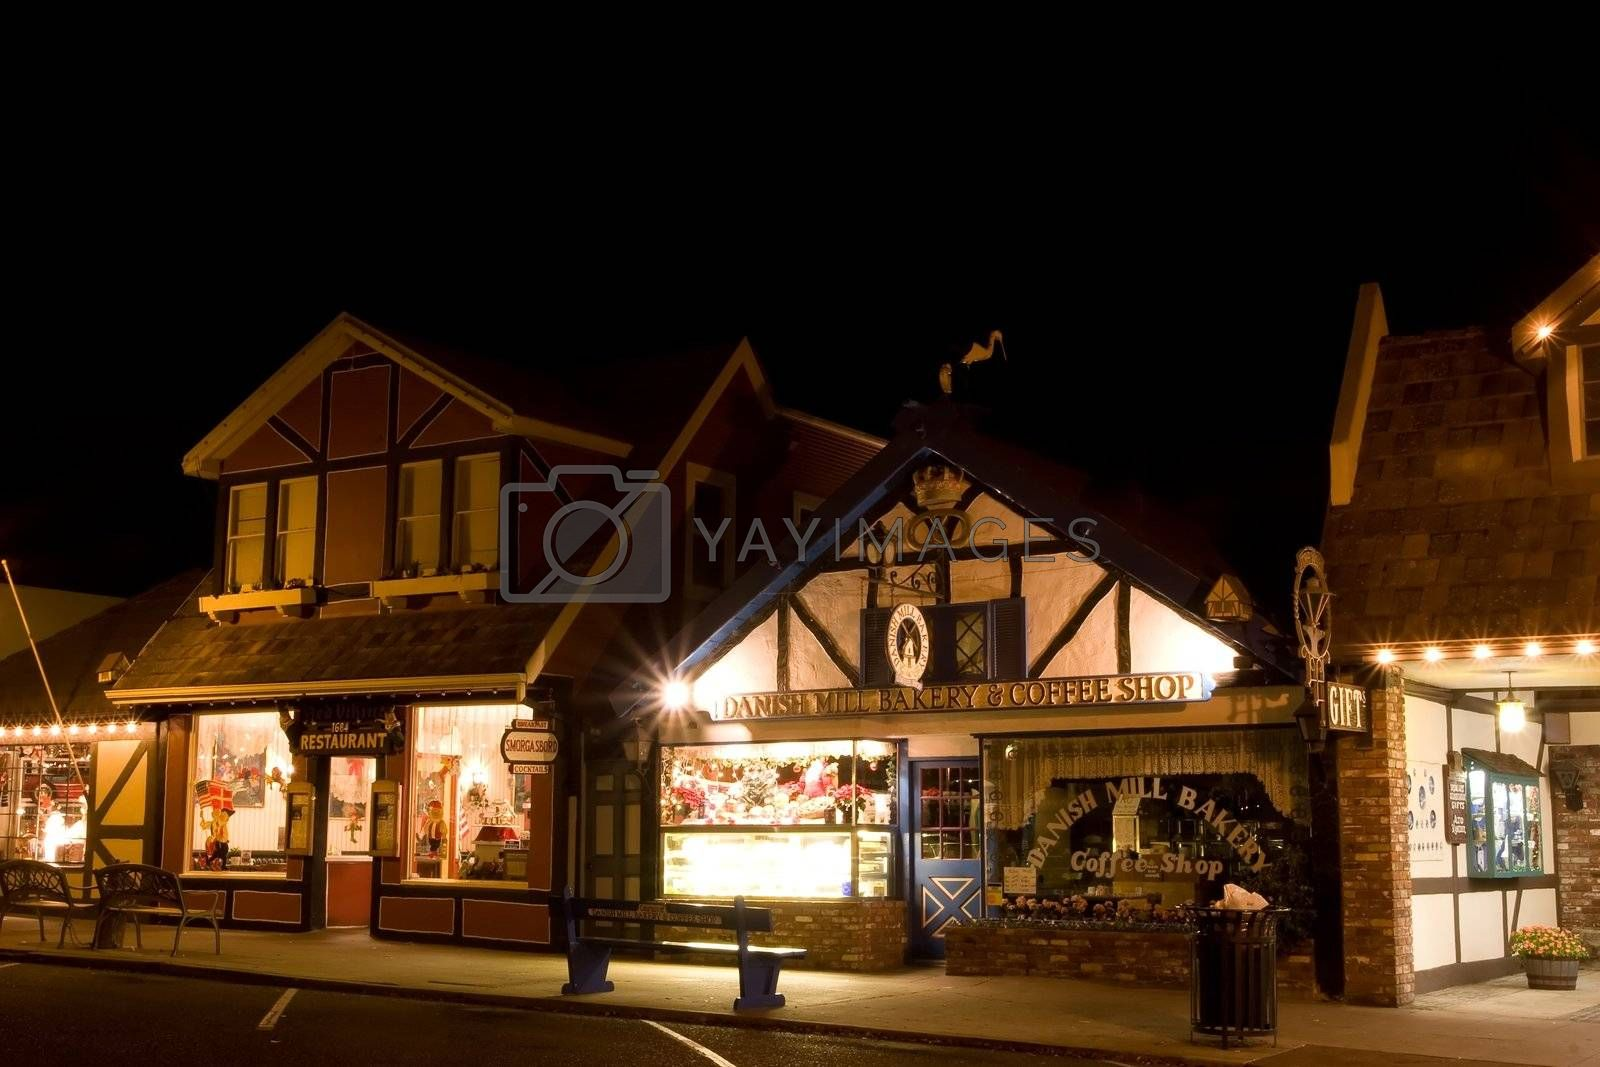 Solvang is a city in Santa Barbara County, California, United States. The city of Solvang is one of the communities that make up the Santa Ynez Valley.